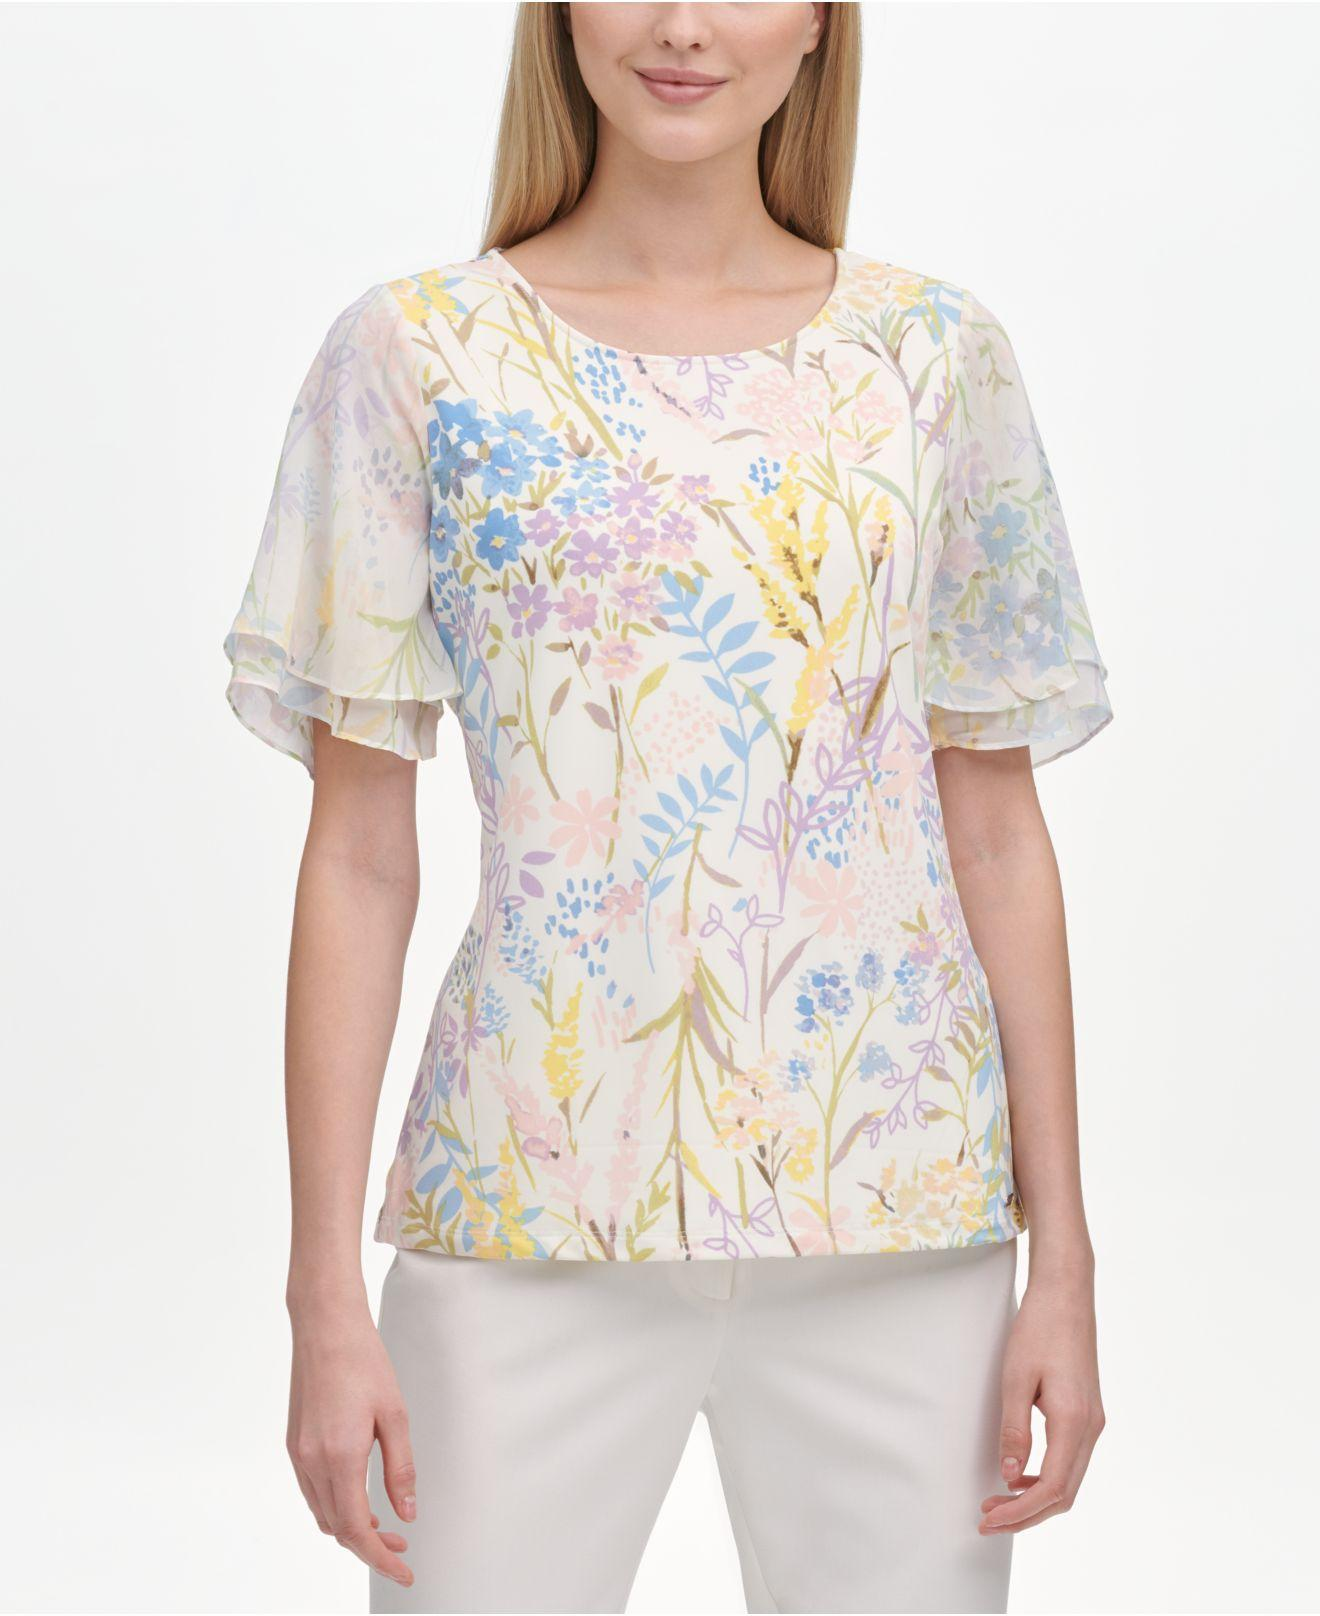 4f4845892 Lyst - Calvin Klein Floral-print Top in White